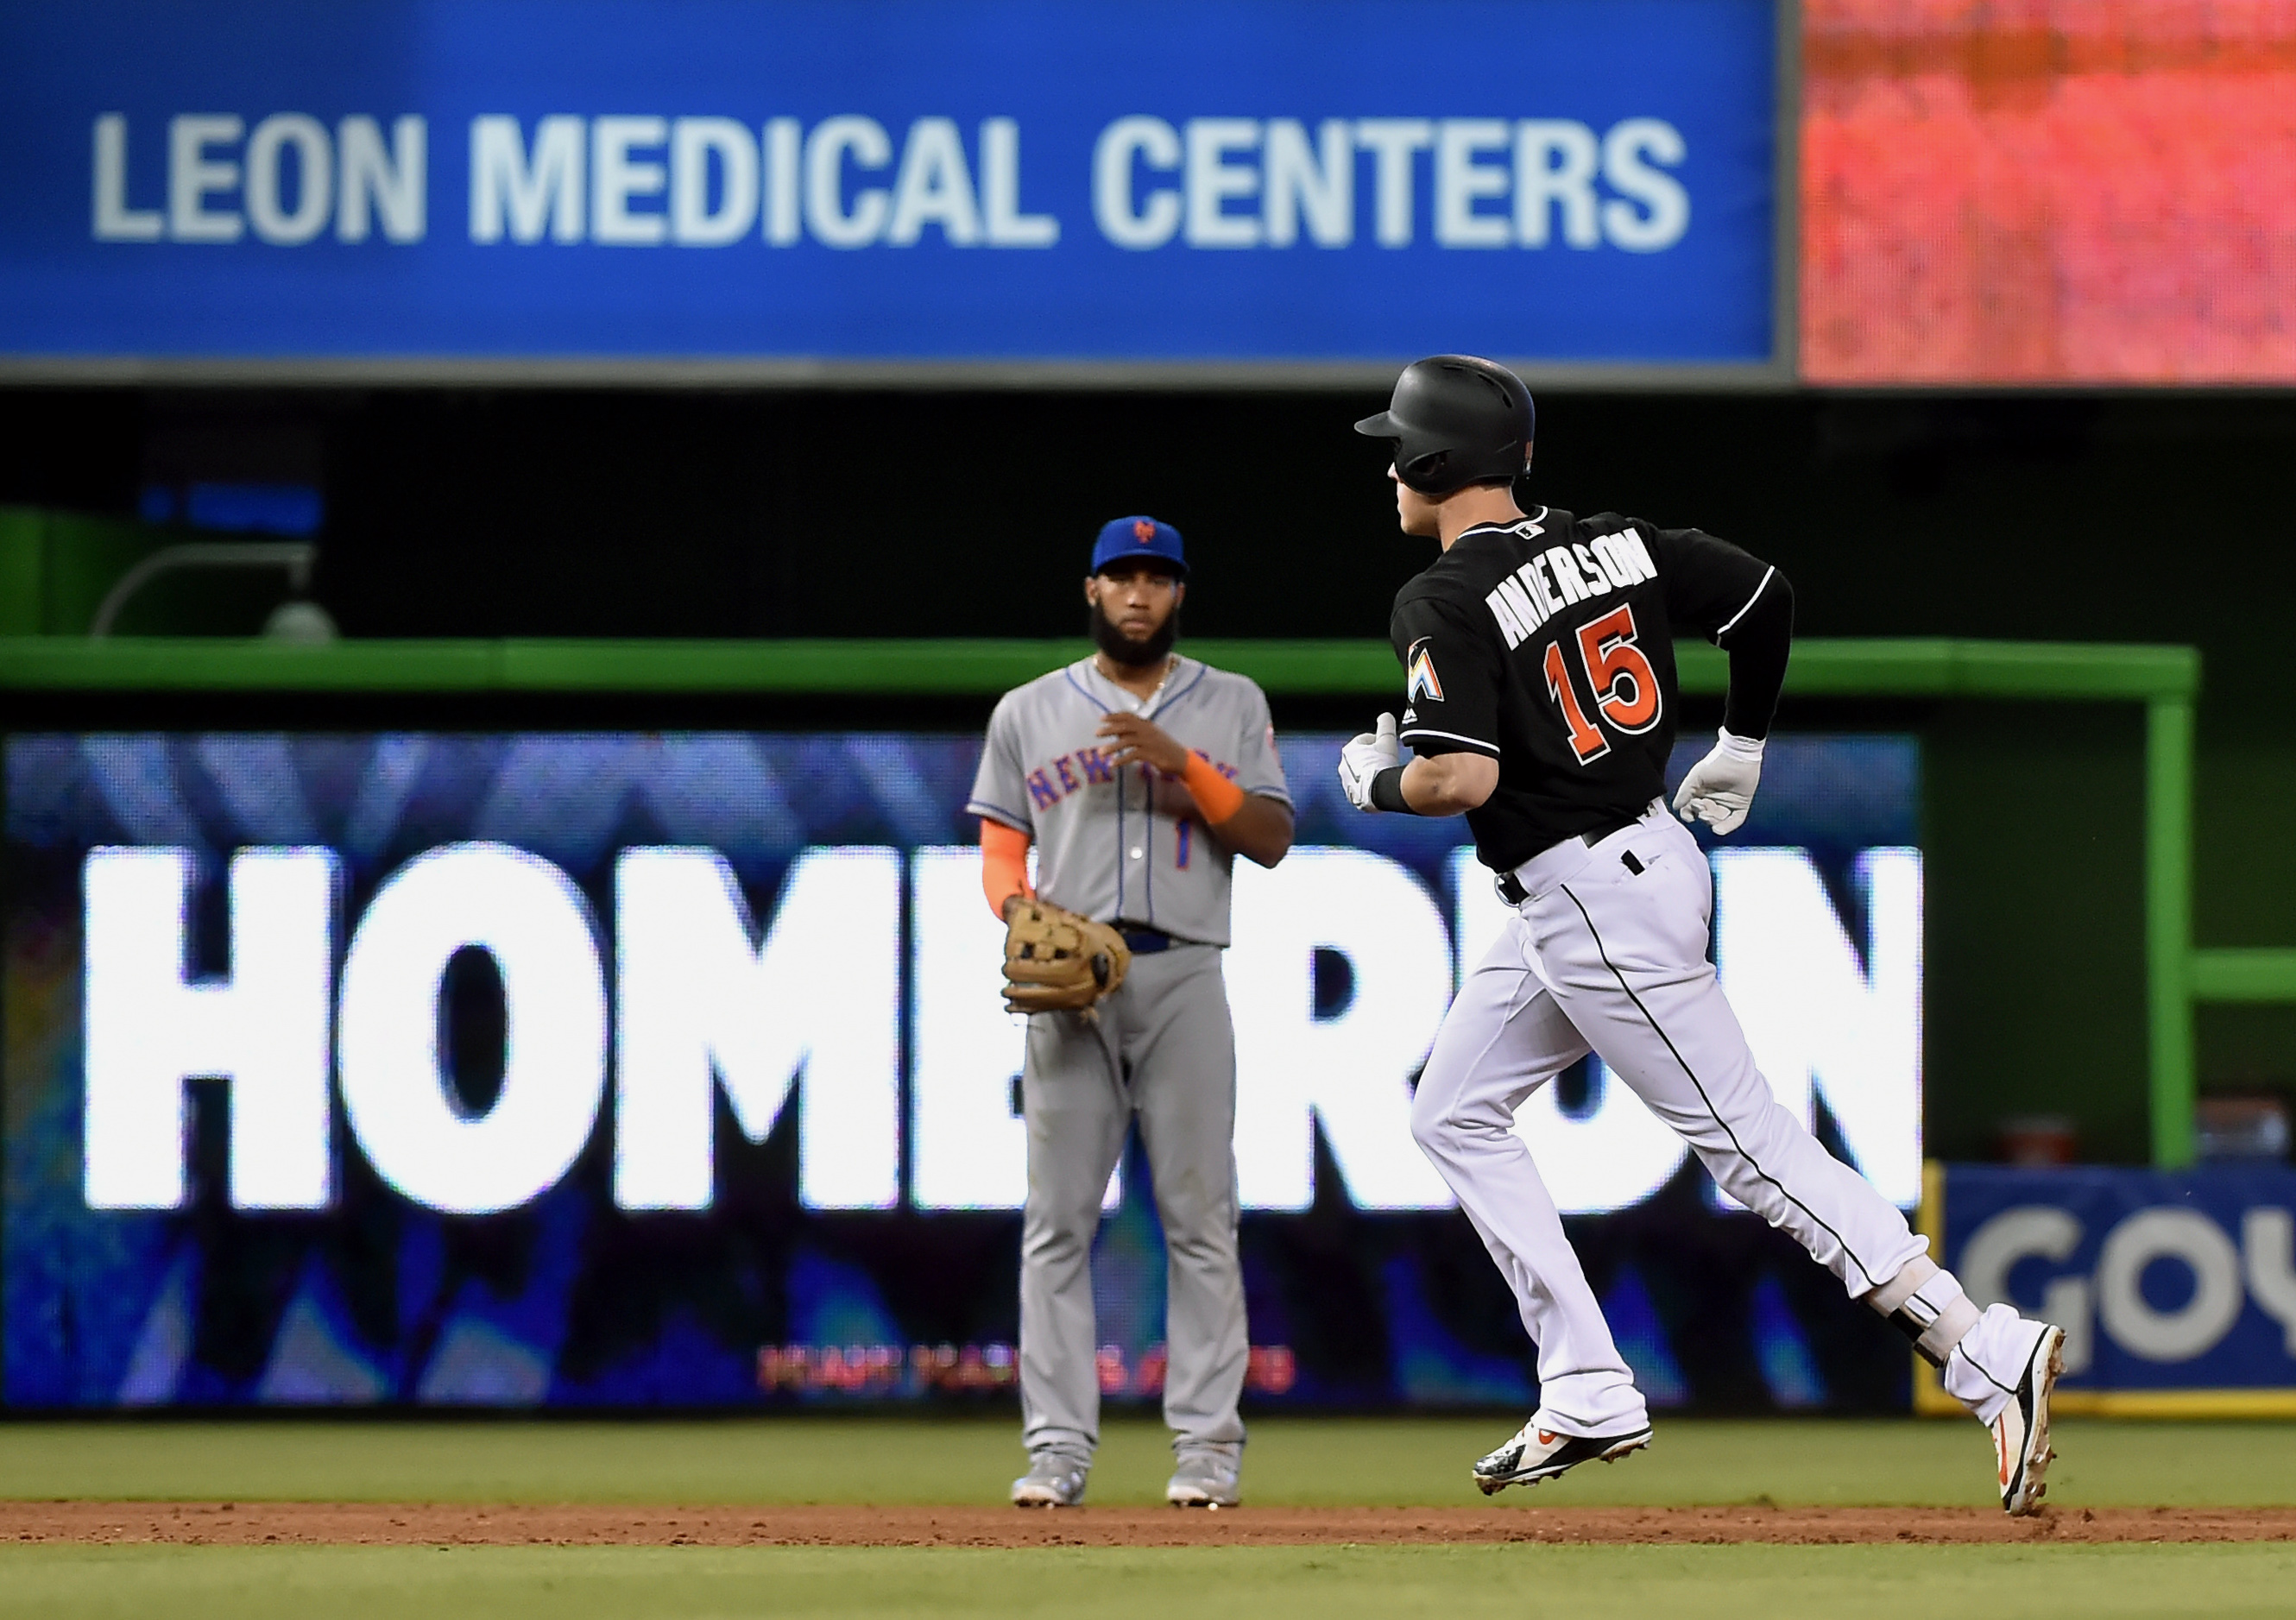 7/1/18 Game Preview: New York Mets at Miami Marlins